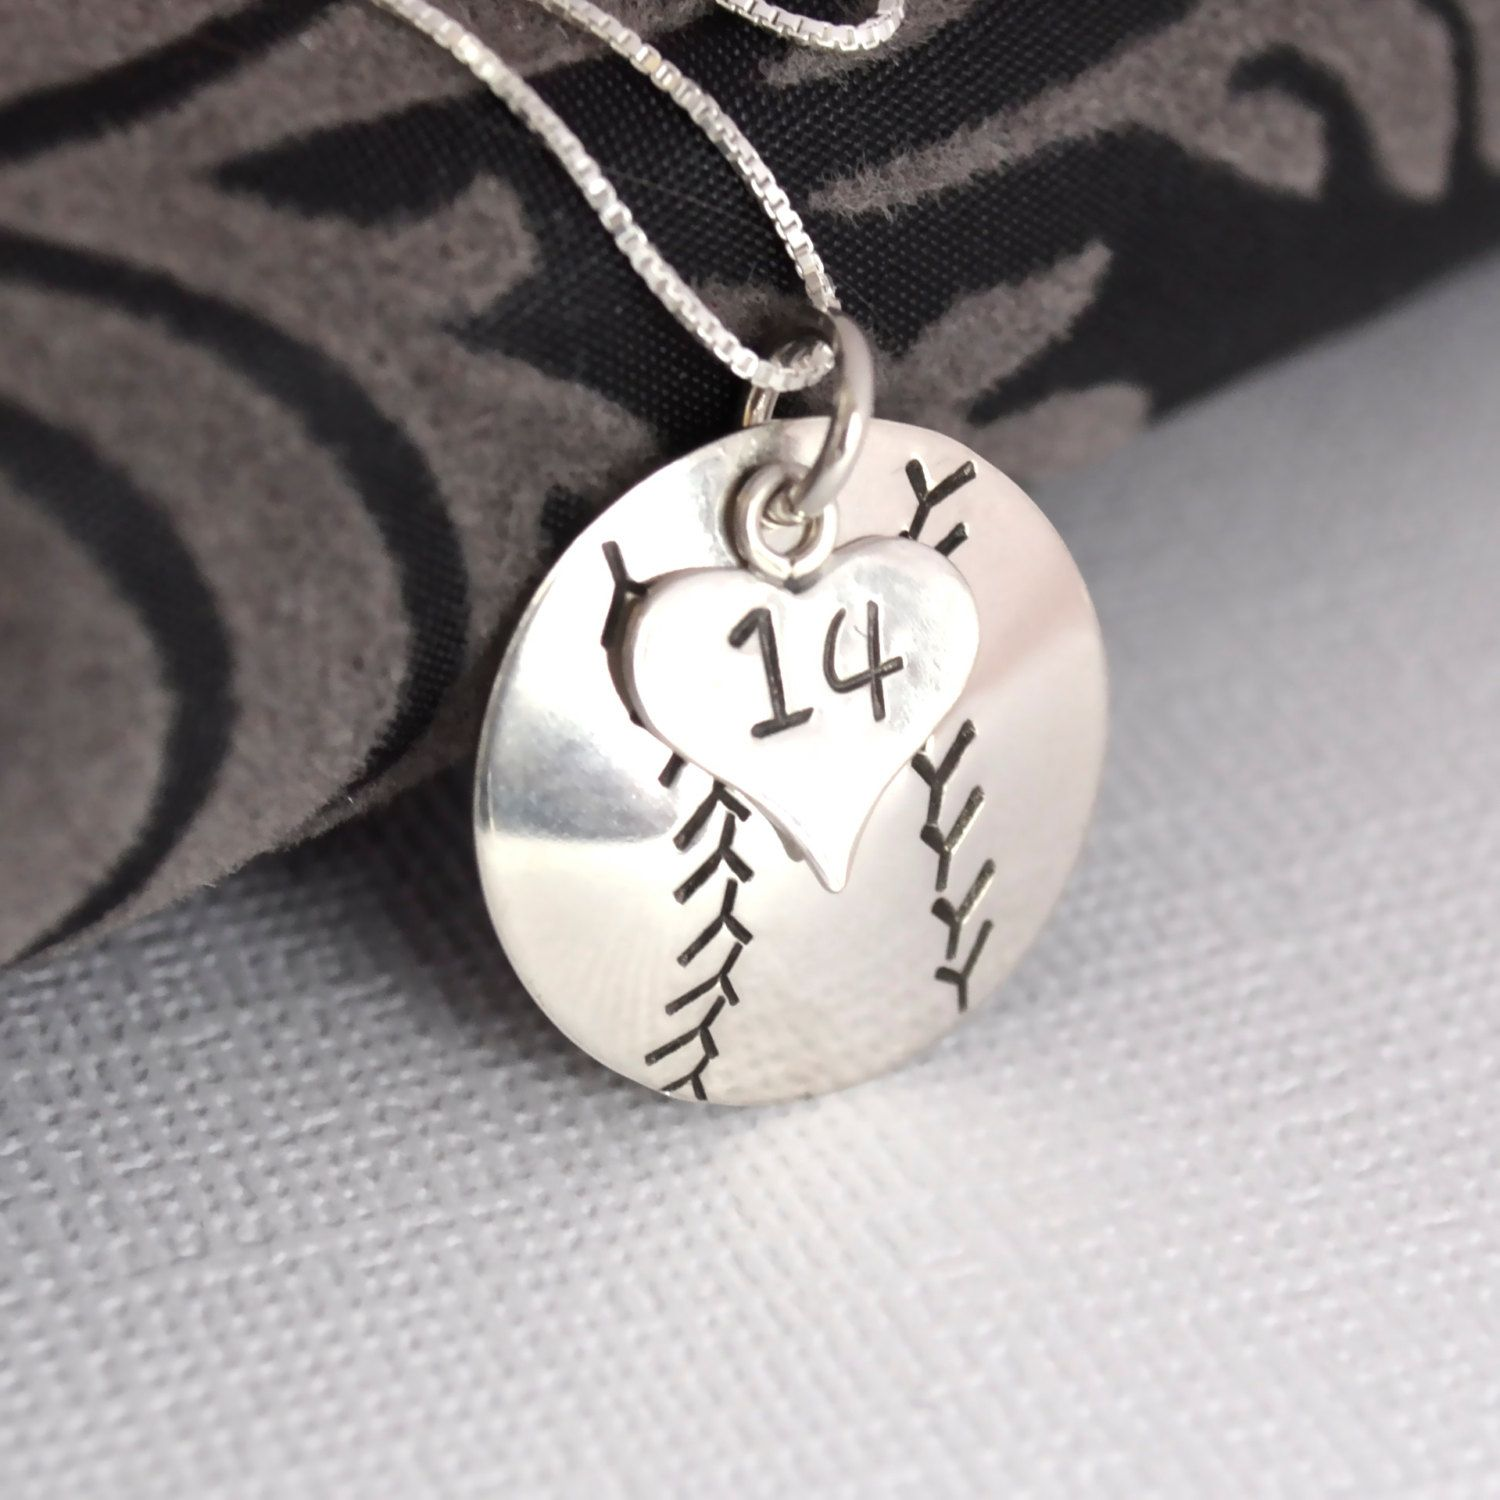 Hand Stamped Baseball Or Softball Necklace With Heart Charm Stamped With Number Softball Necklace Baseball Necklace Baseball Jewelry